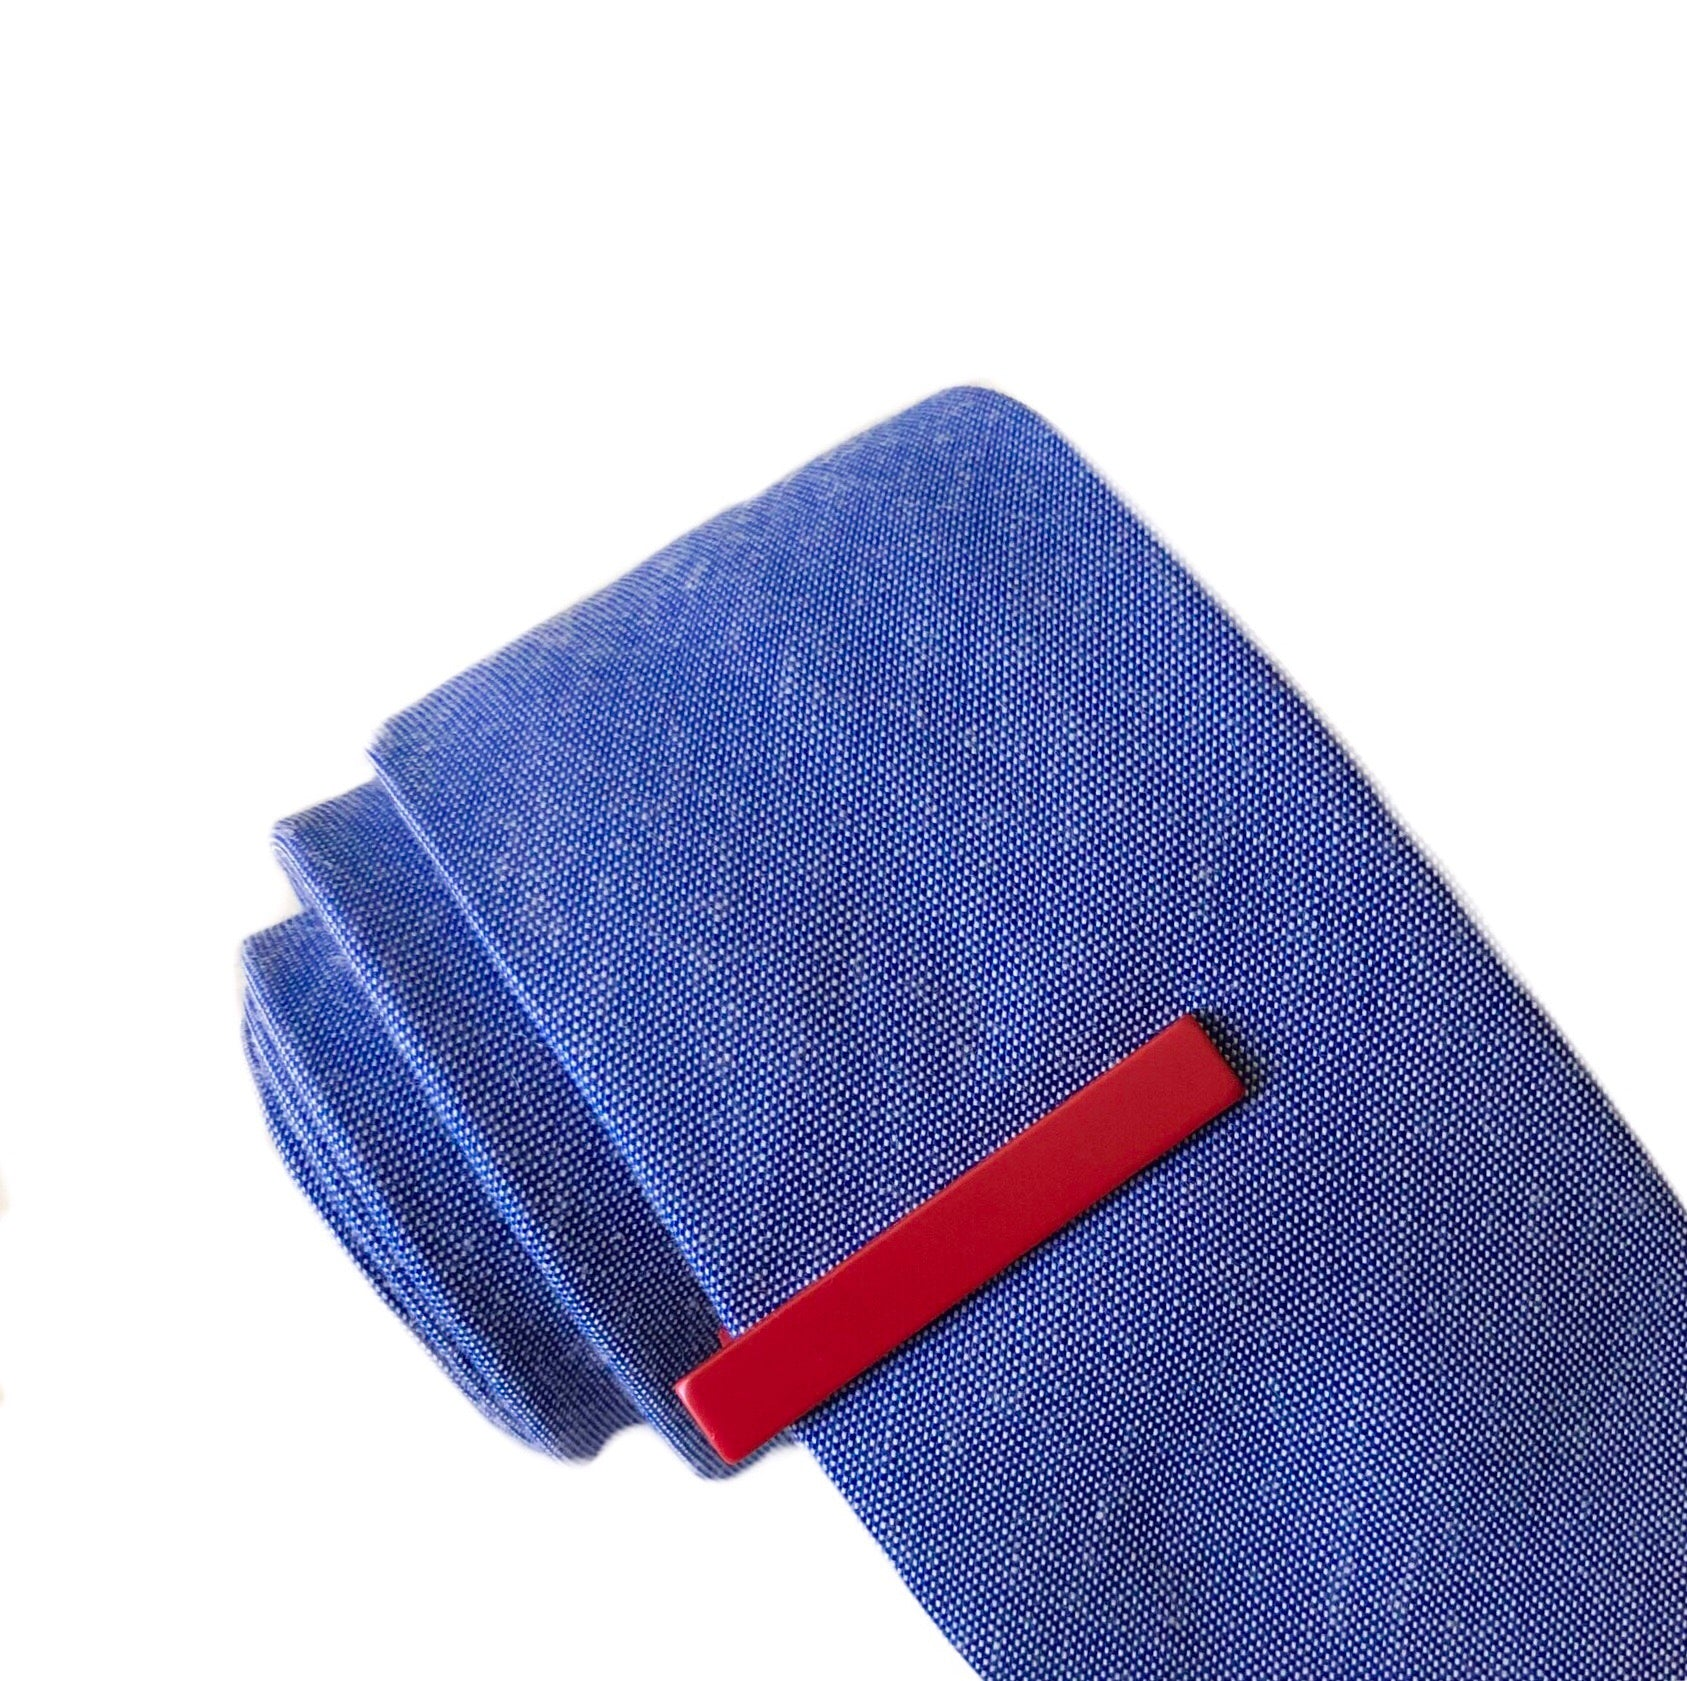 Kent Tie Bar in Red